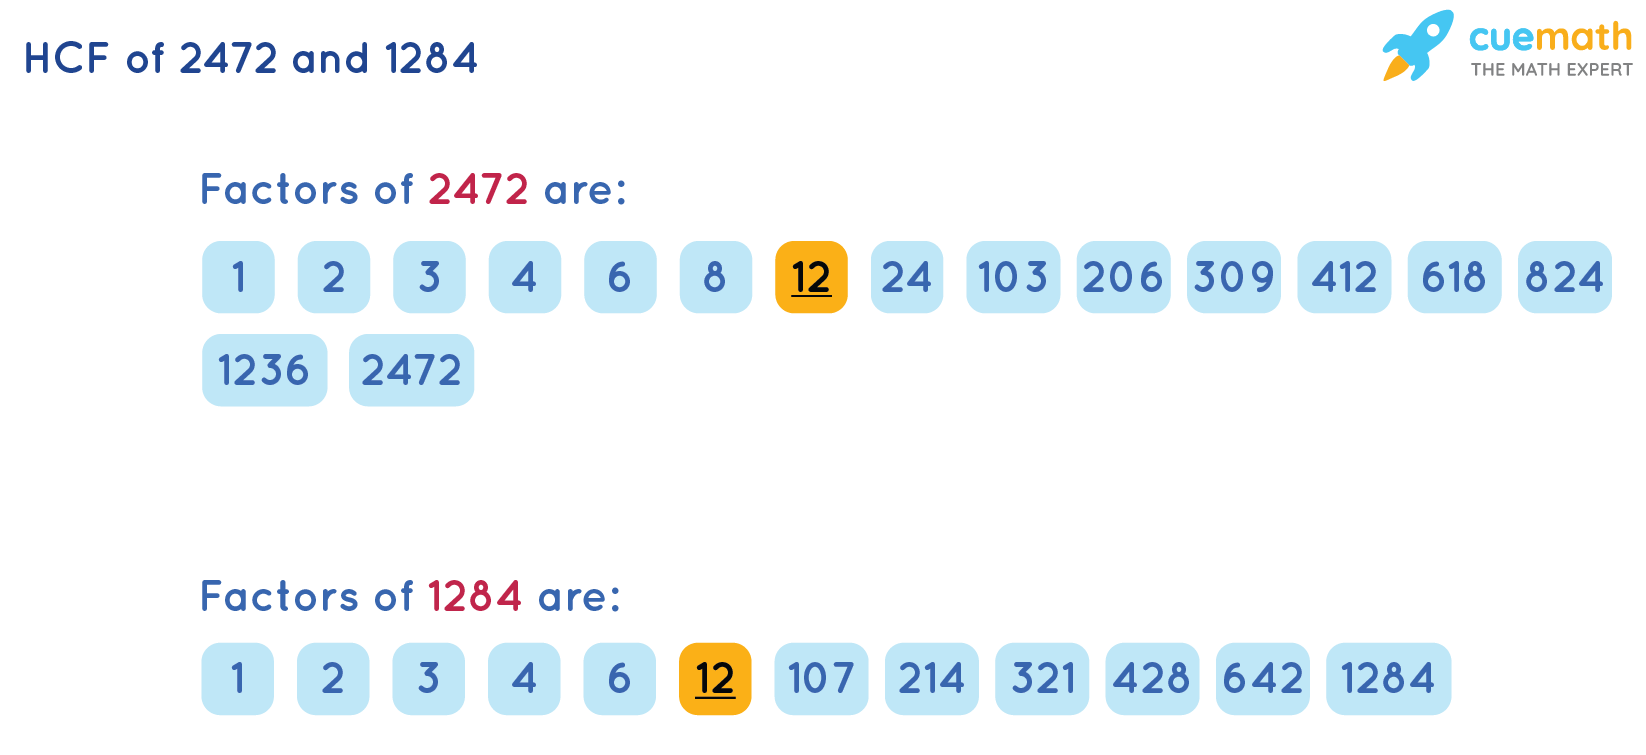 HCF of 2472 and 1284